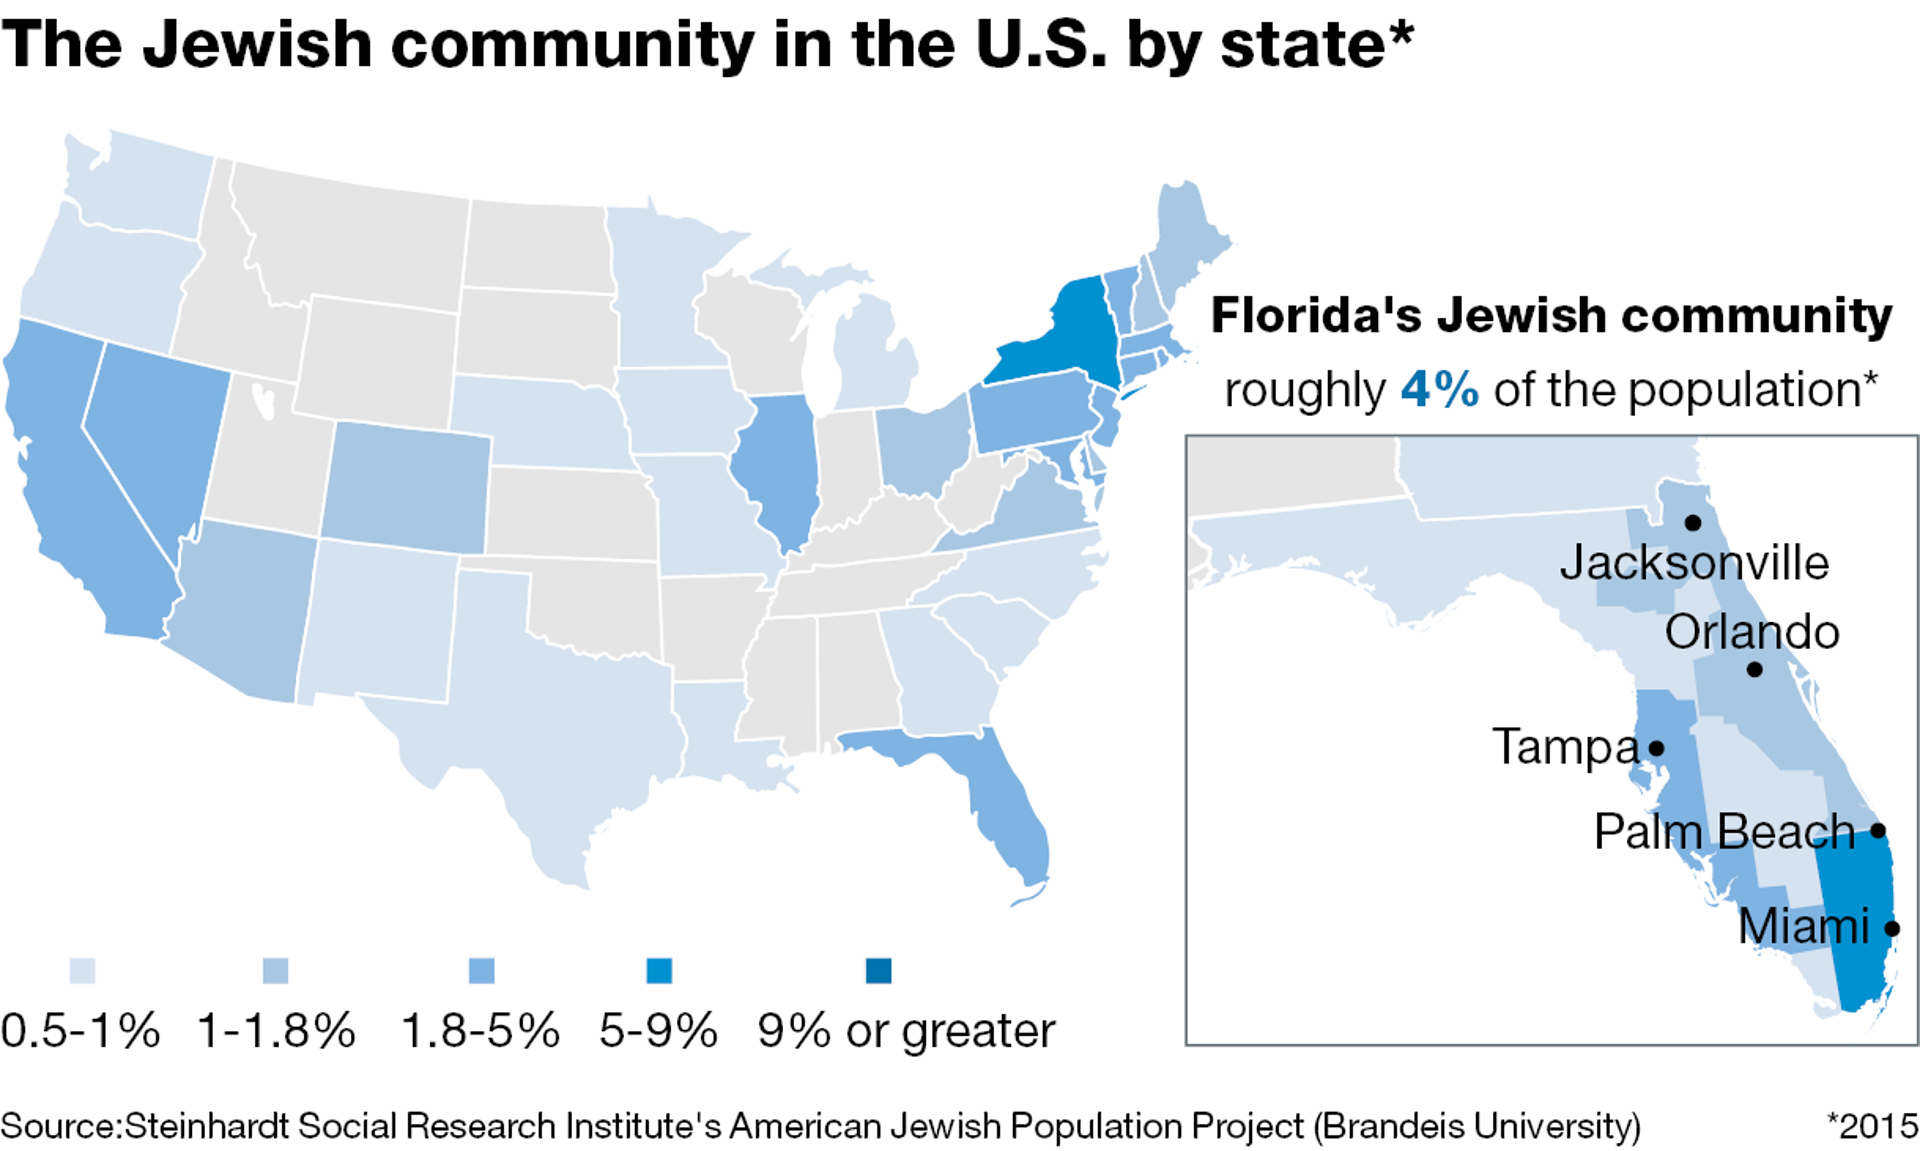 The Jewish community in the U.S. and in Florida - a breakdown